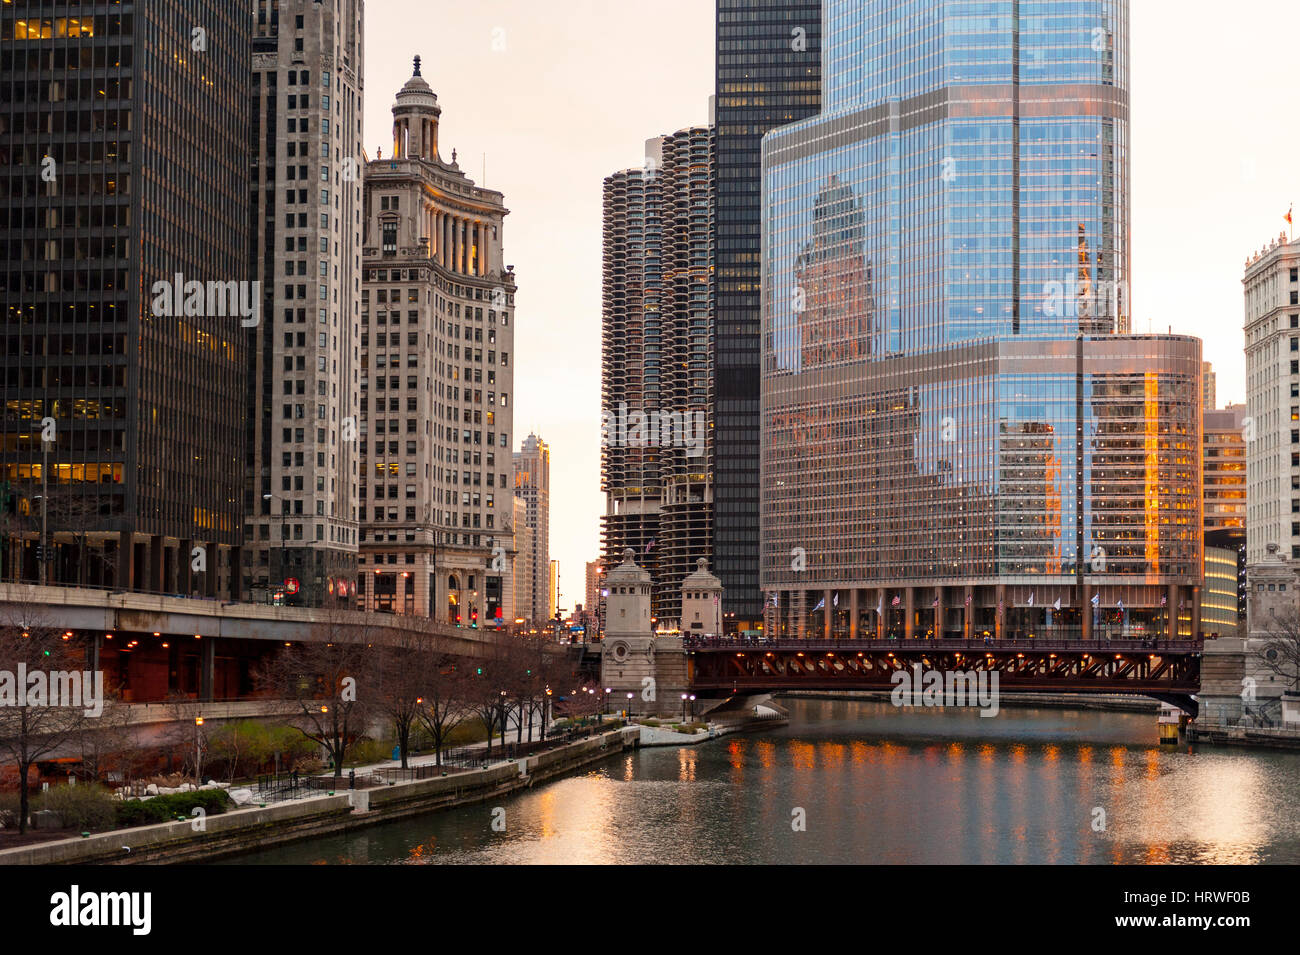 view-of-downtown-chicago-from-the-chicag